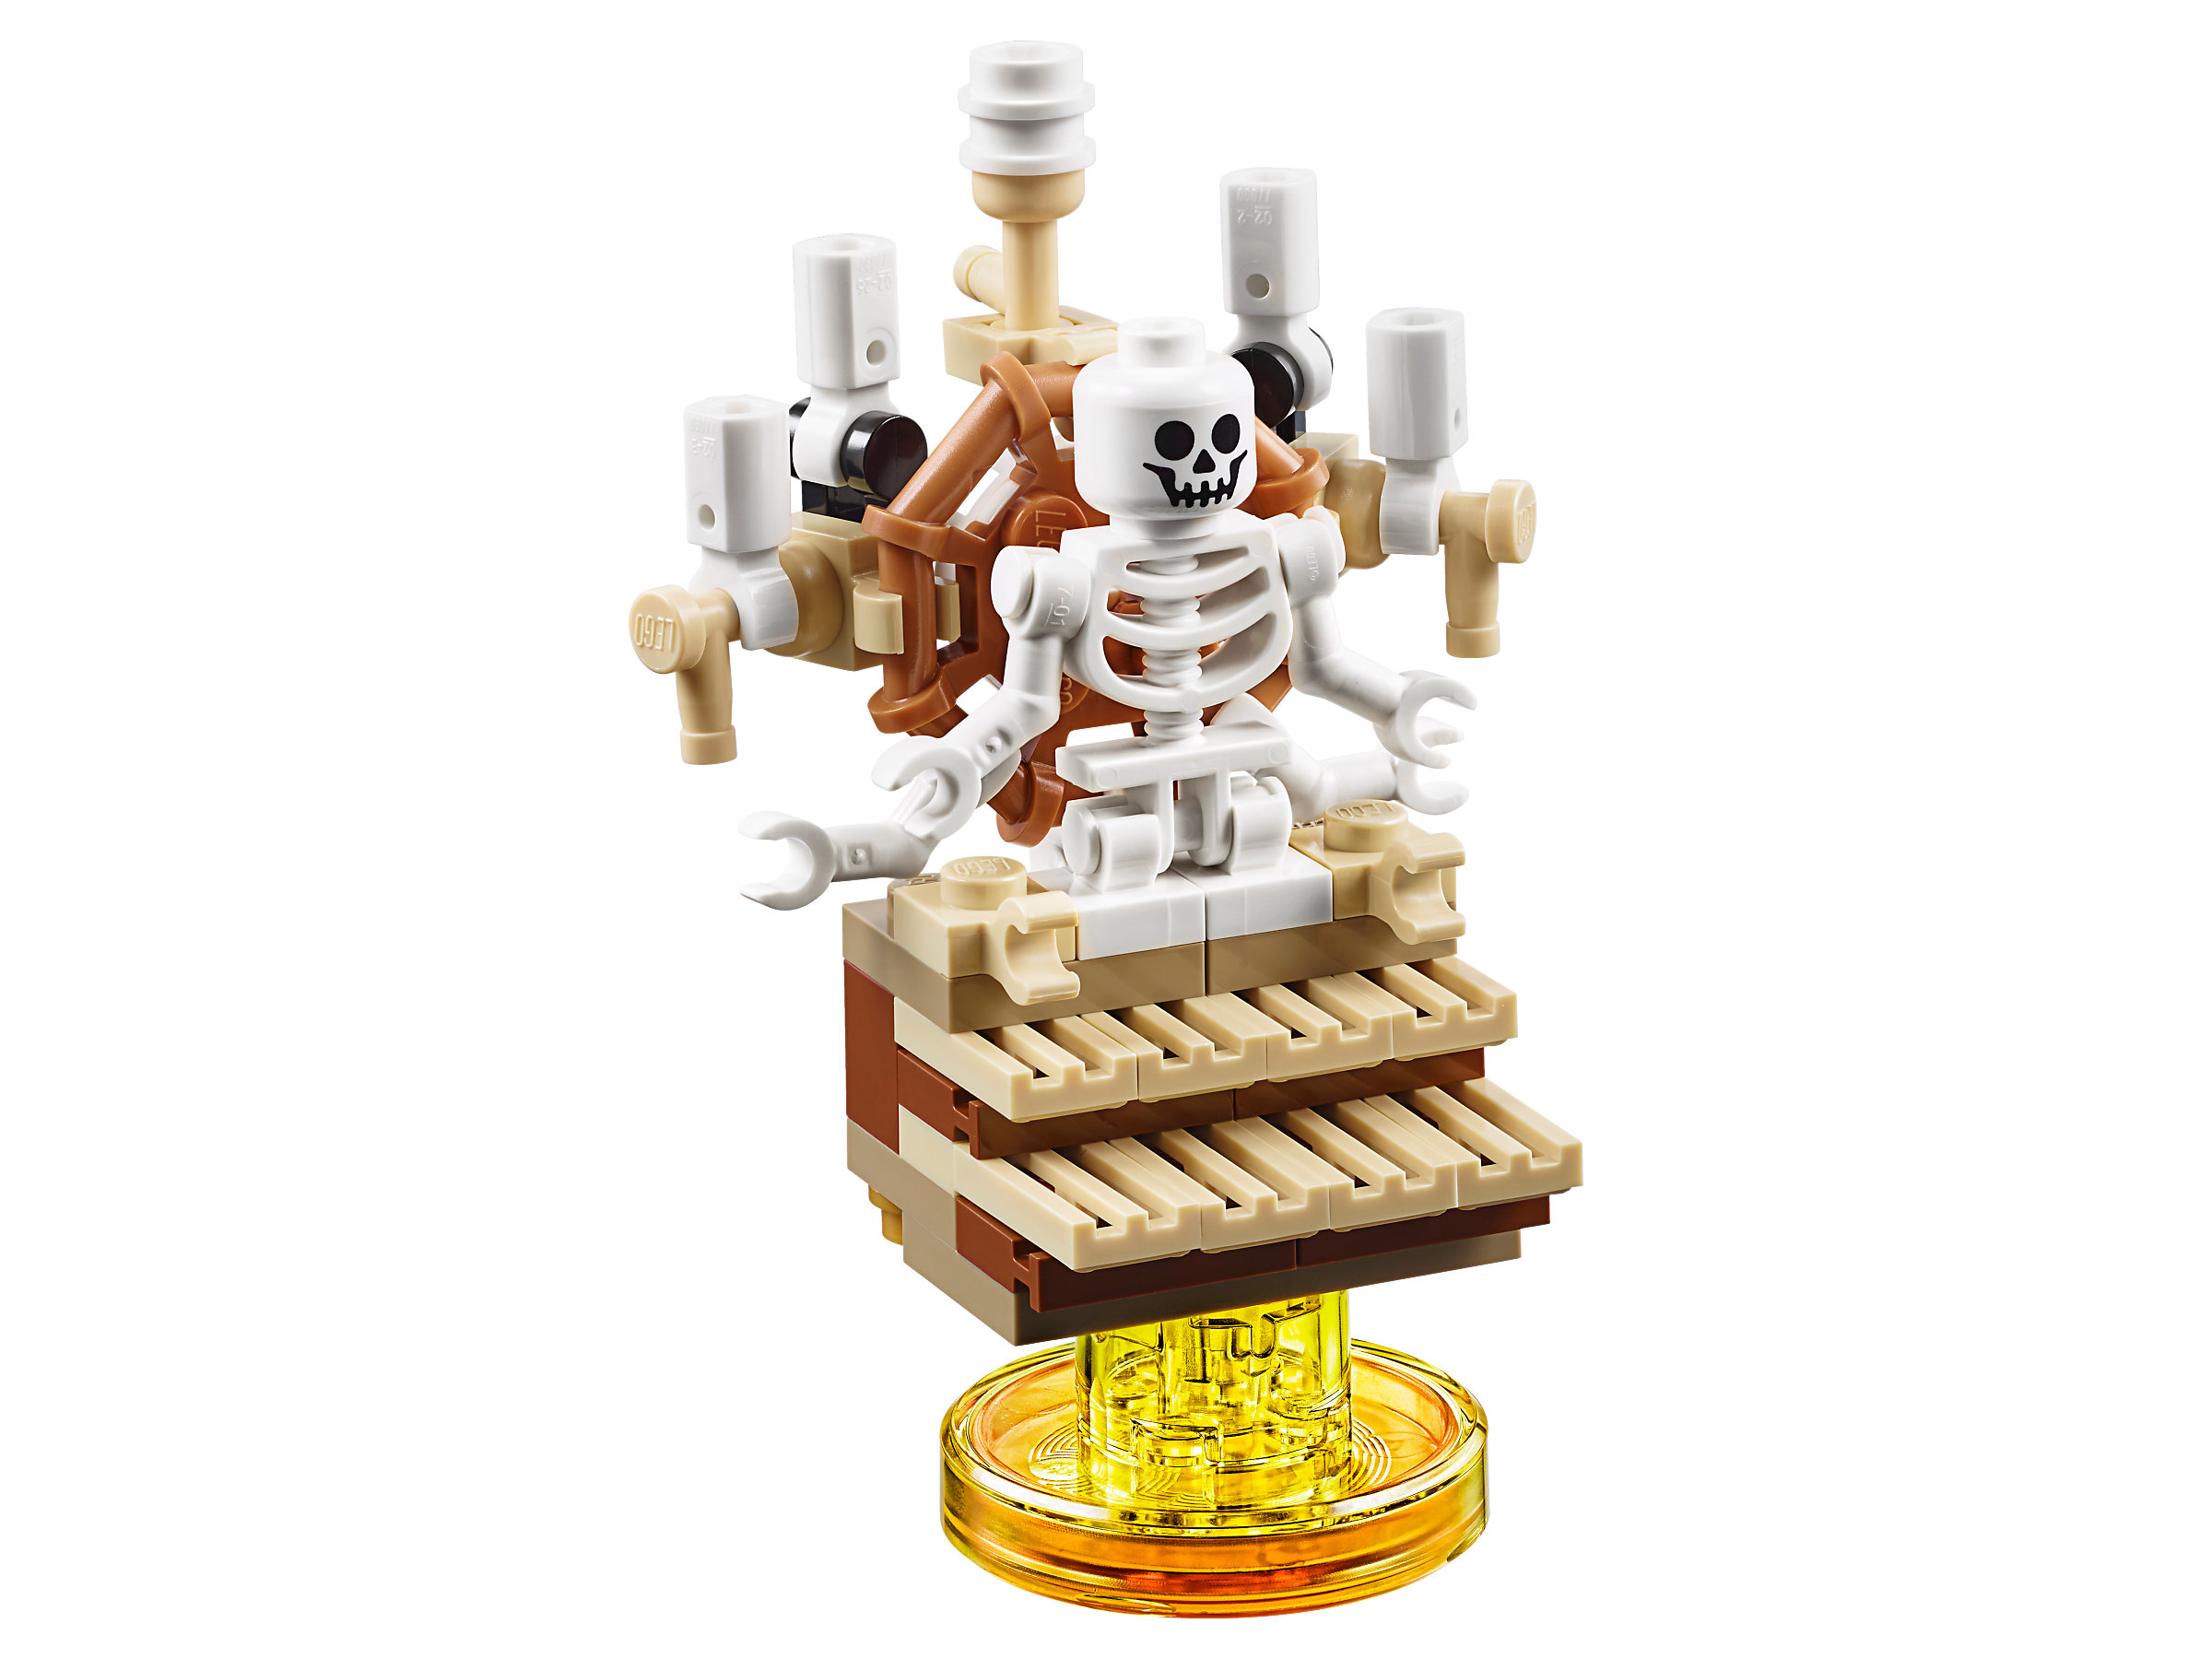 Lego Dimensions The Goonies Level Pack 71267 One Eyed Willy's Sloth Skeleton New